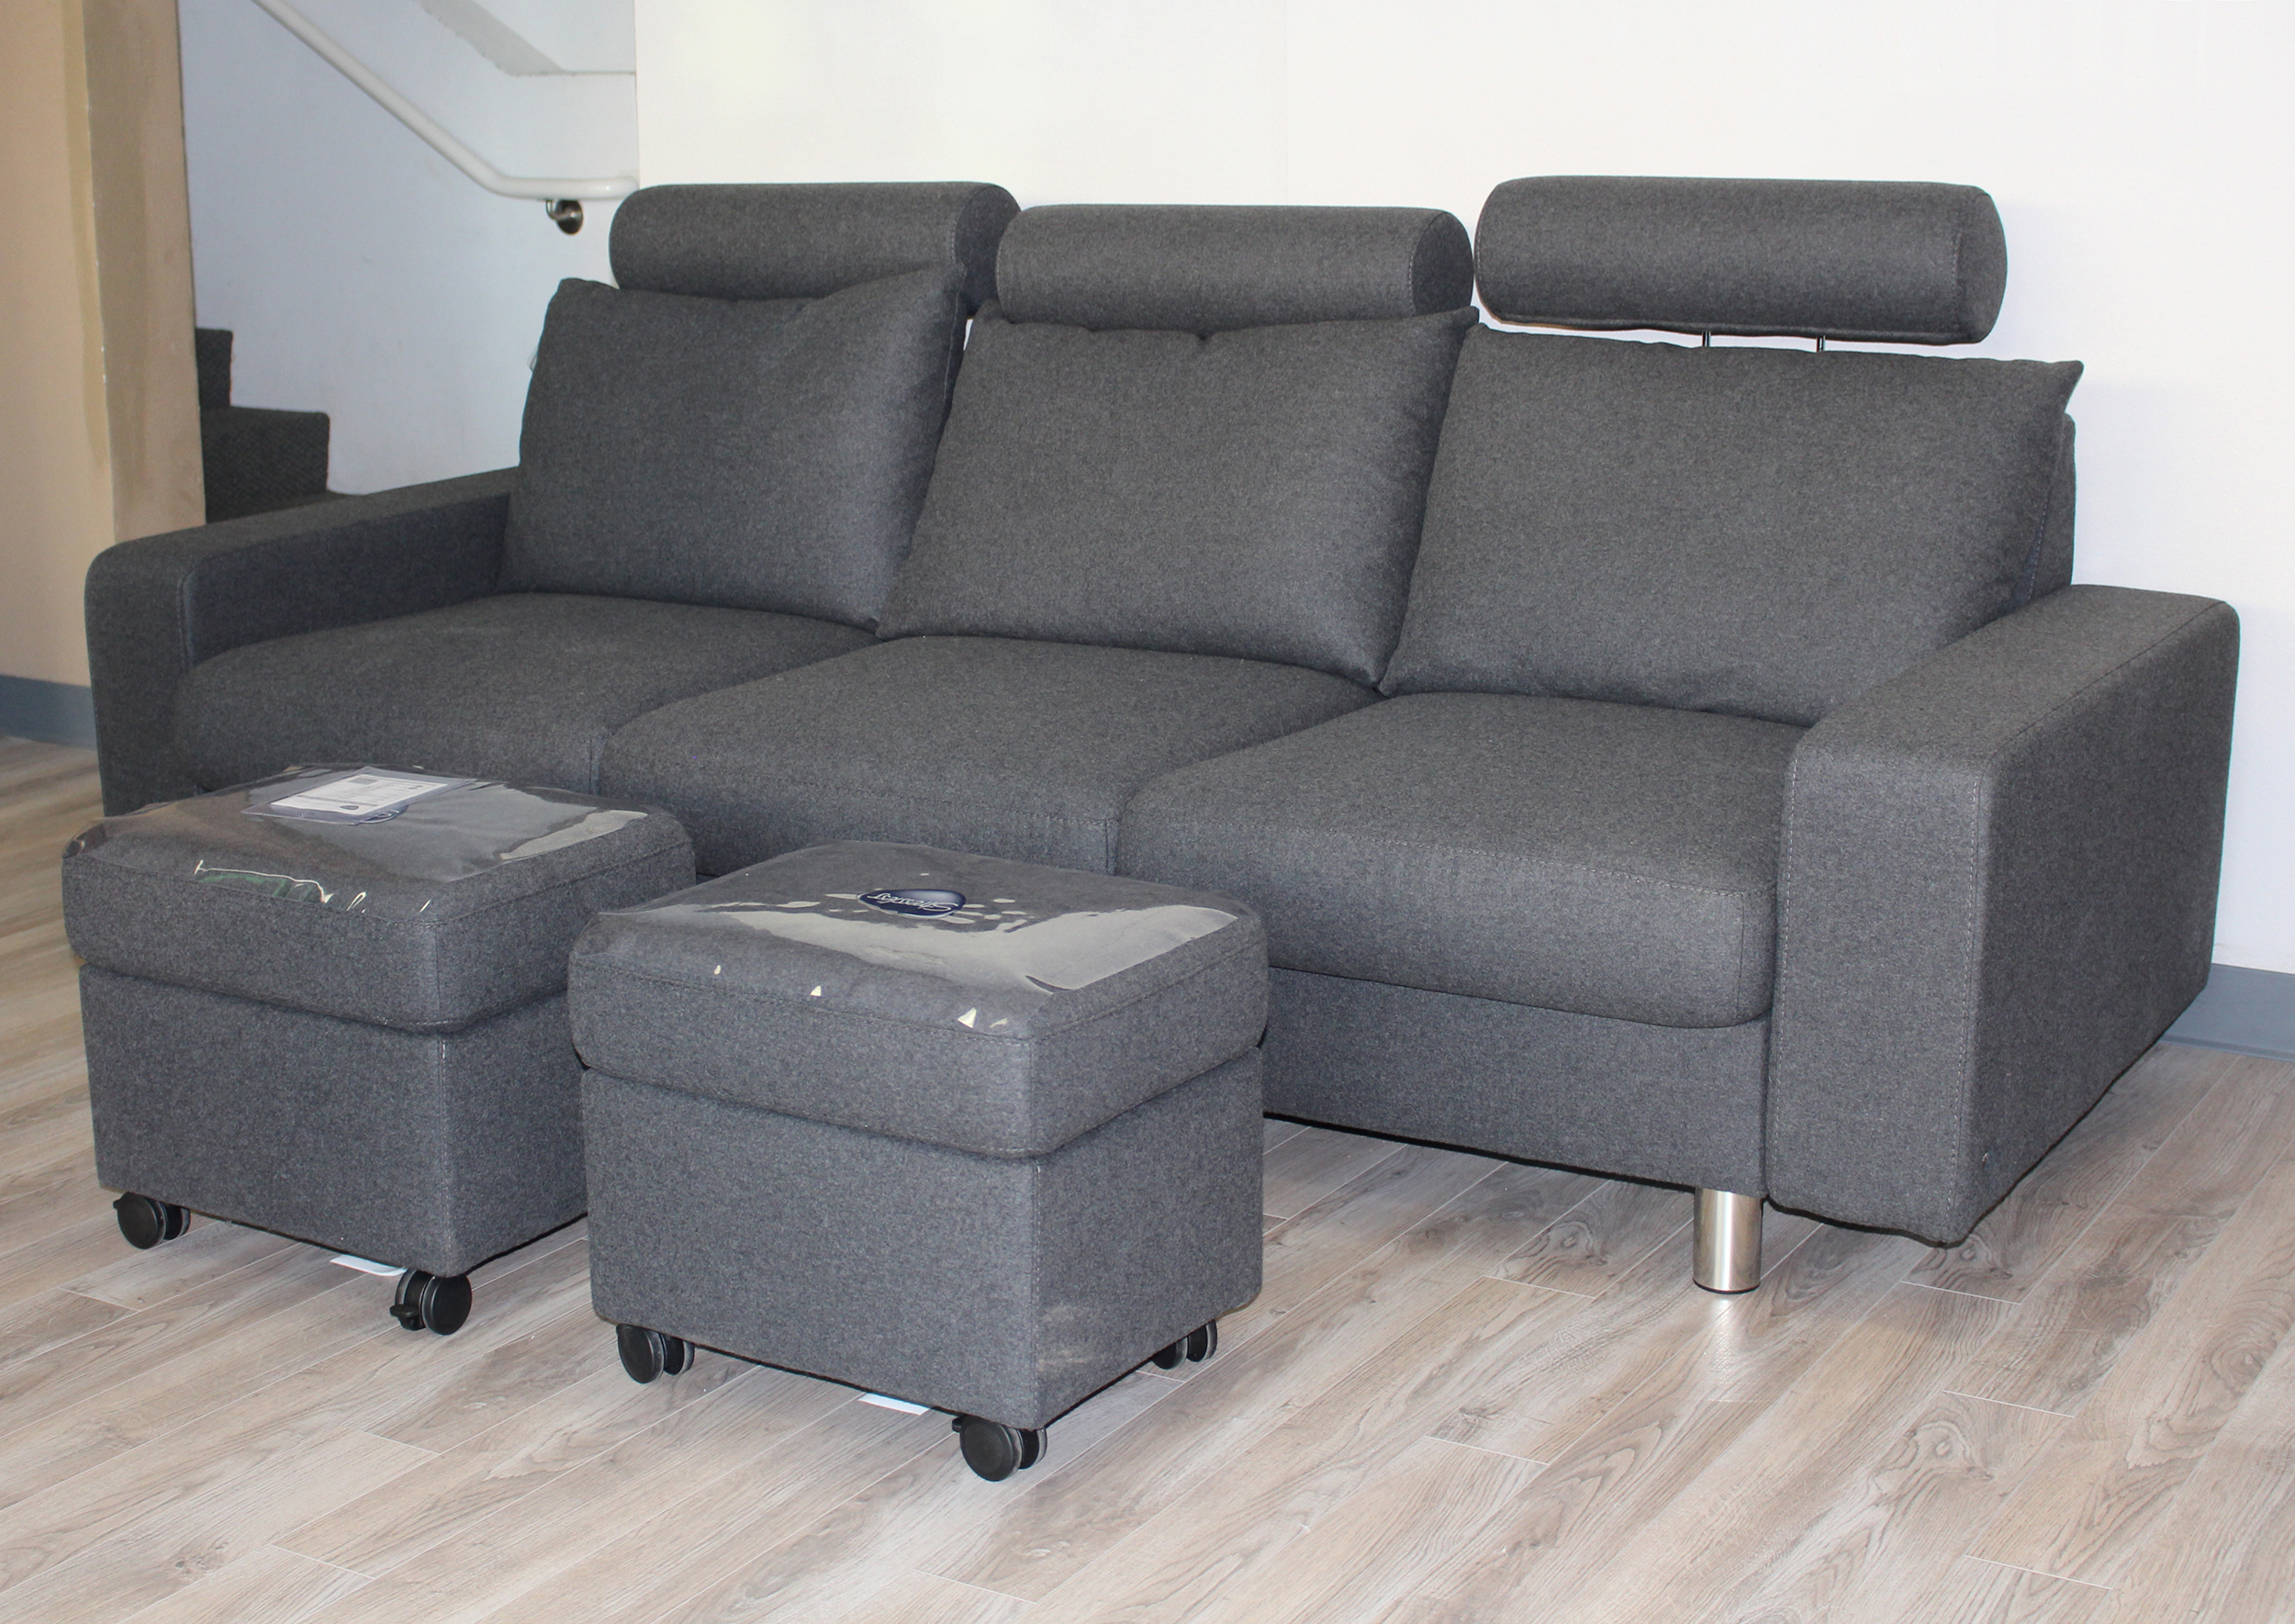 Ekornes Stressless Preisliste Stressless Sofa Circle Furniture Eldorado Stressless Highback